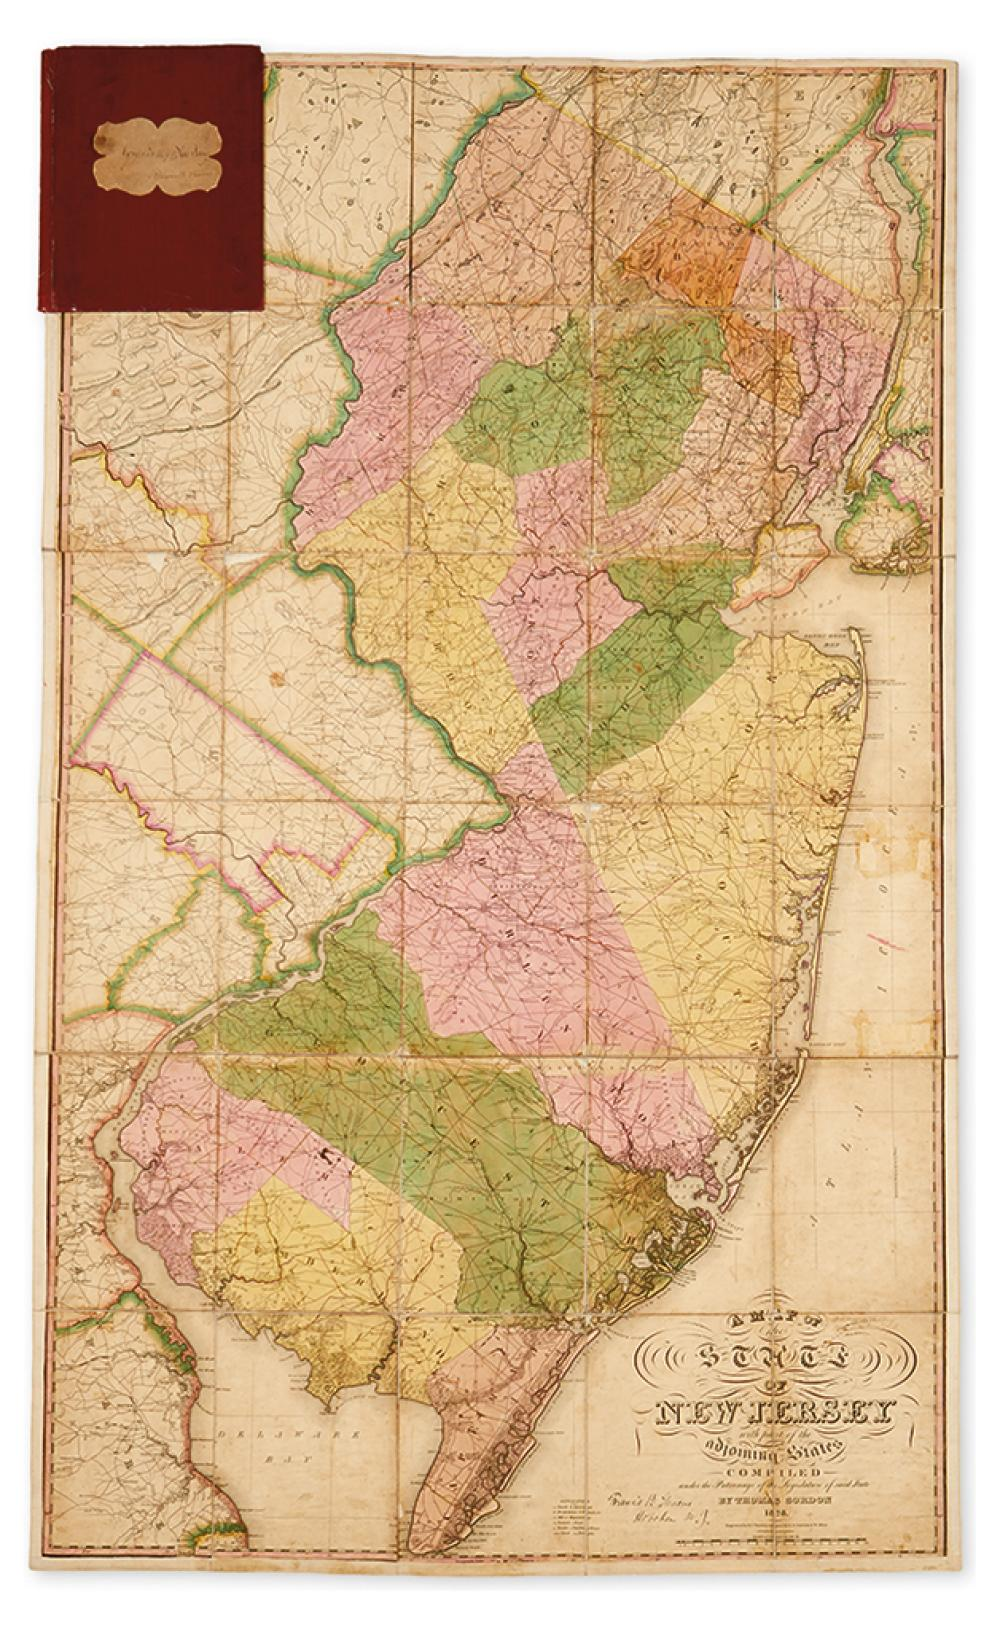 (NEW JERSEY.) Gordon, Thomas. A Map of the State of New Jersey with Part of the Adjoining States.